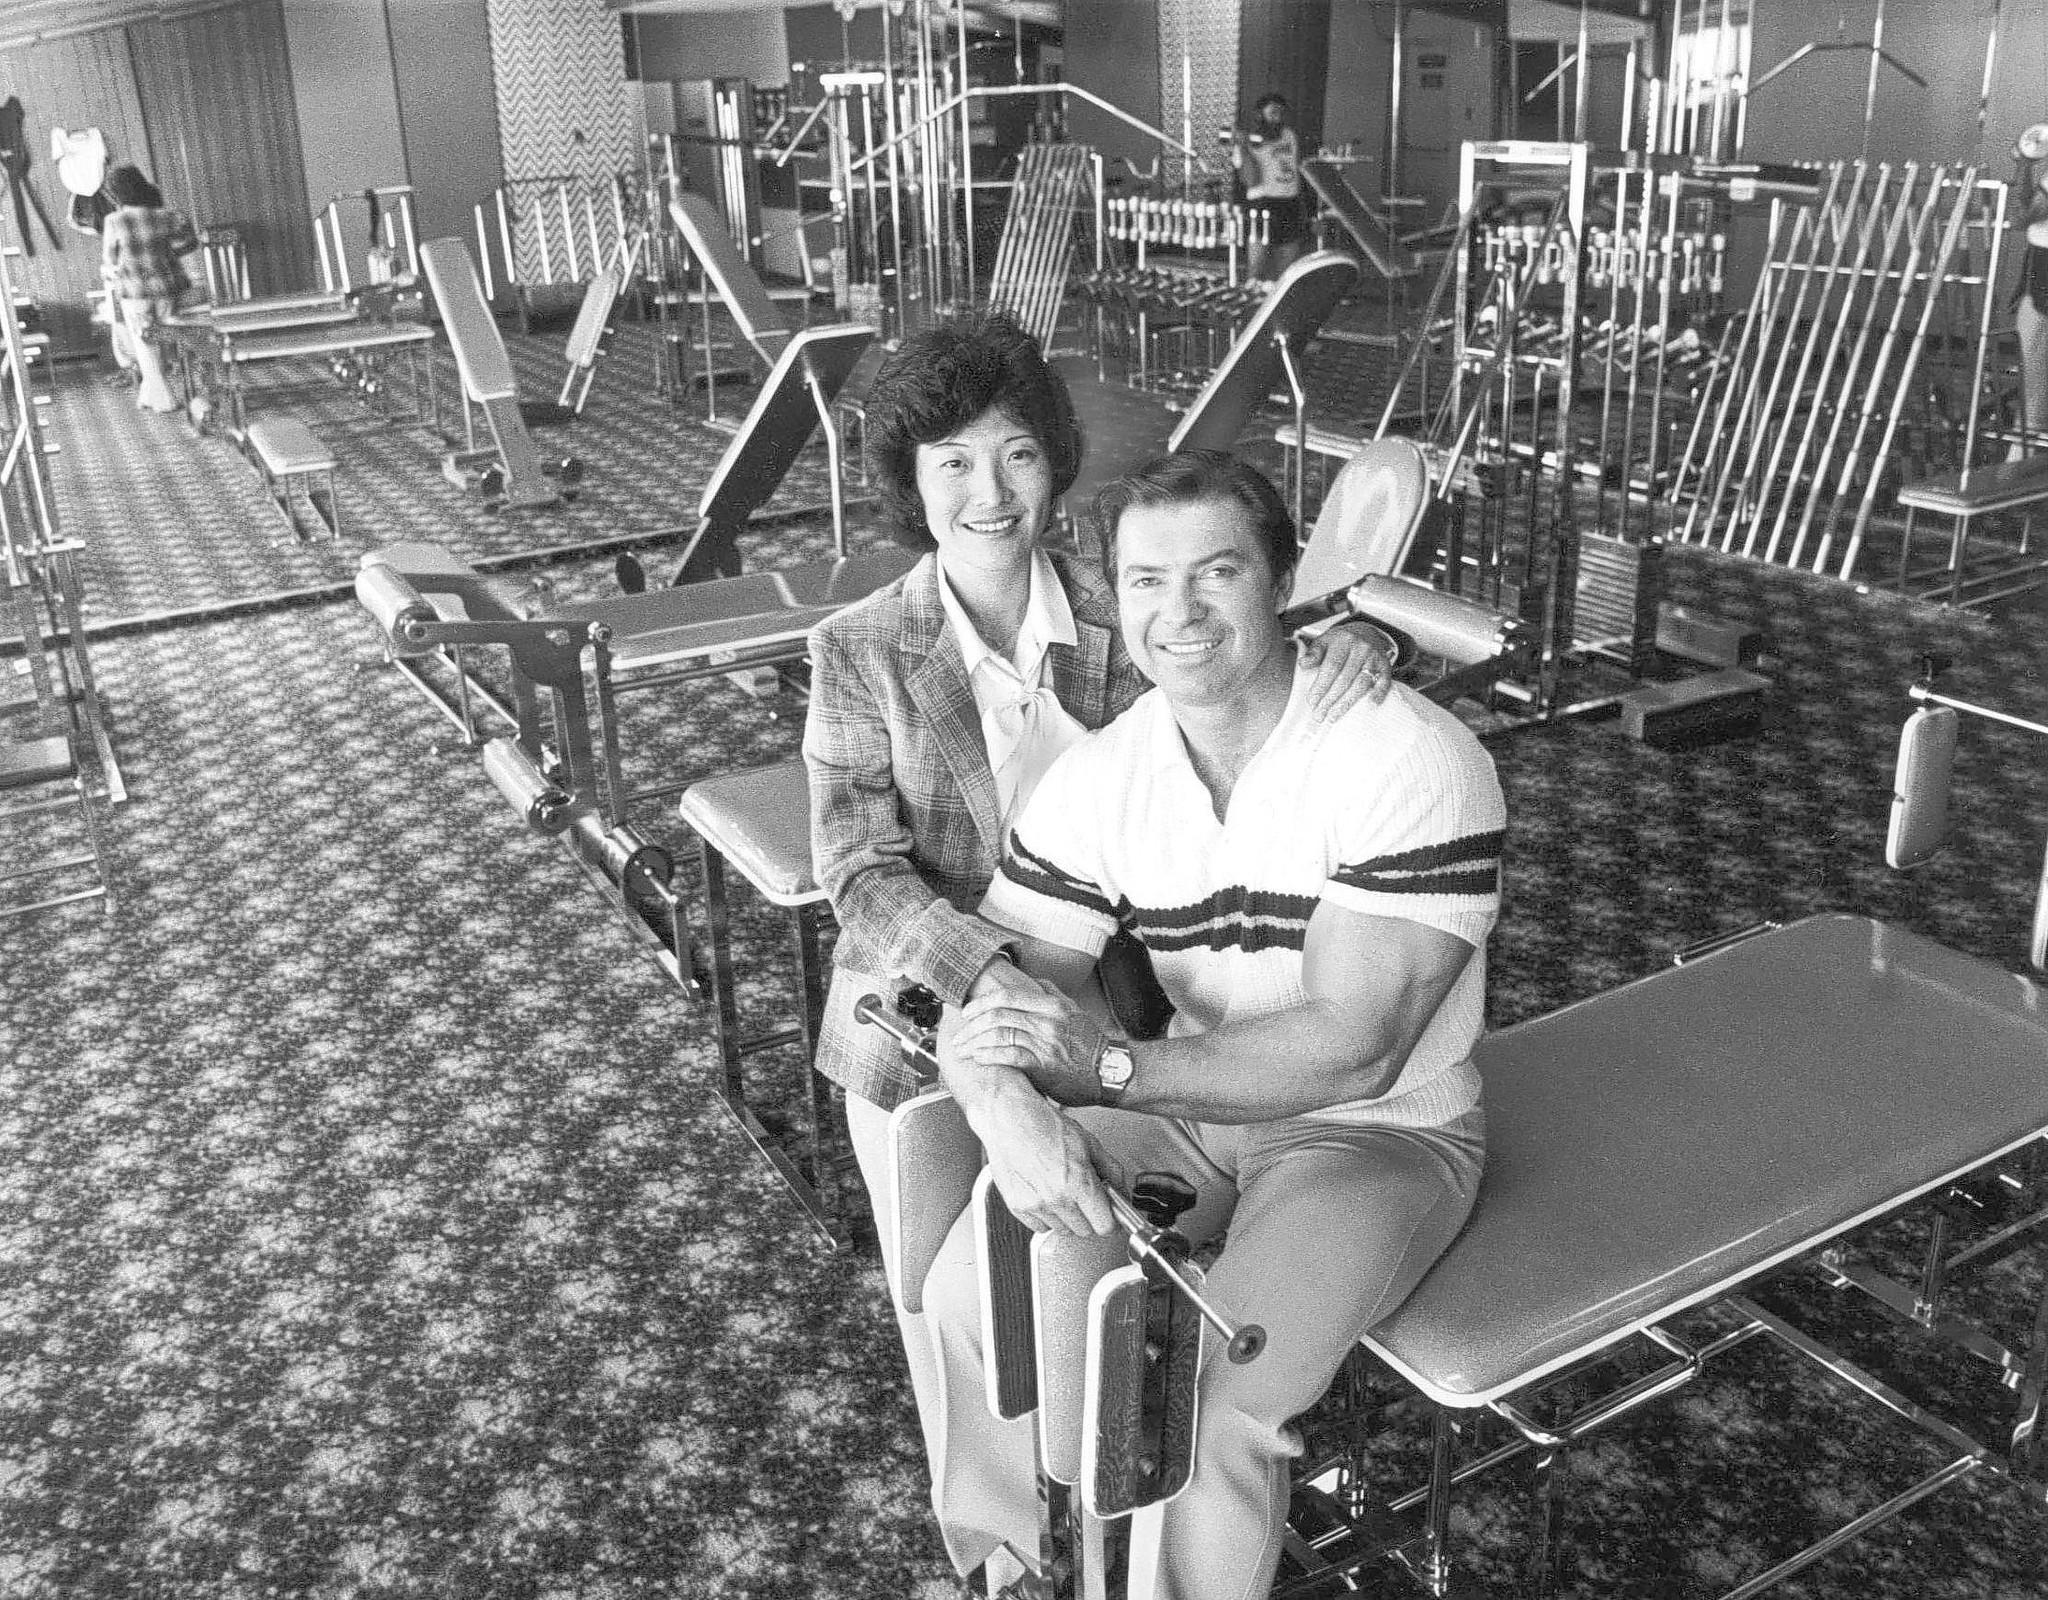 Larry Scott and wife Rachel in 1980. The legendary bodybuilder, who retired in 1966 after winning his second Mr. Olympia title, saying he wanted to go out on top, has died in Utah at age 75.